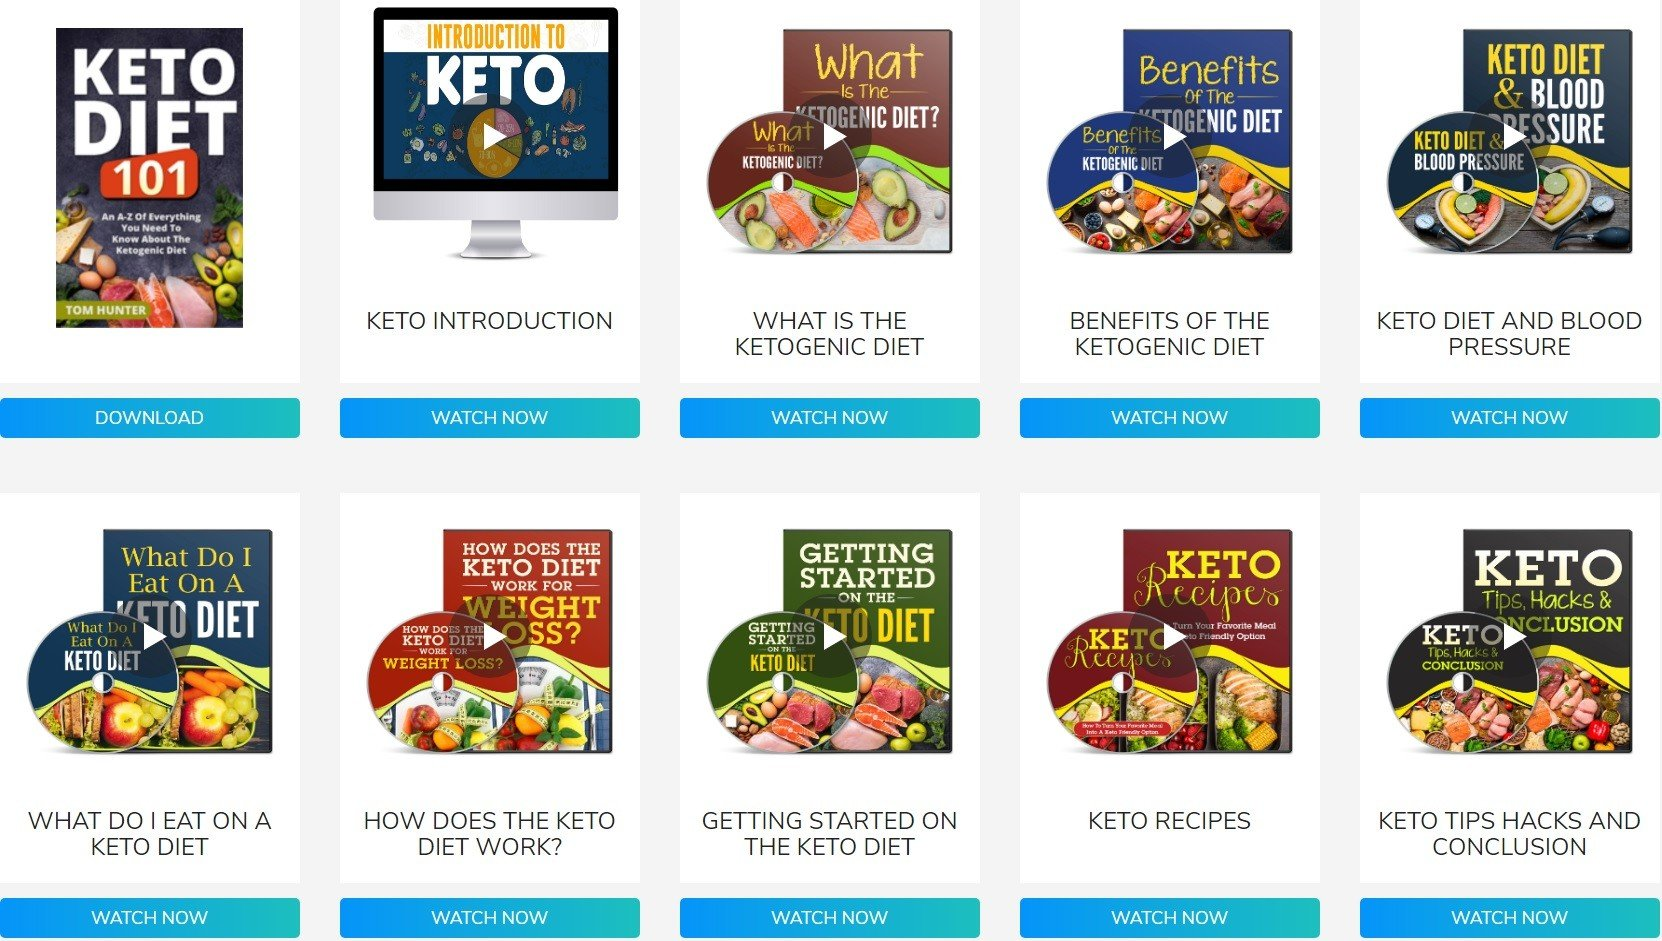 Custom Keto Diet Plan Coupons For Students April